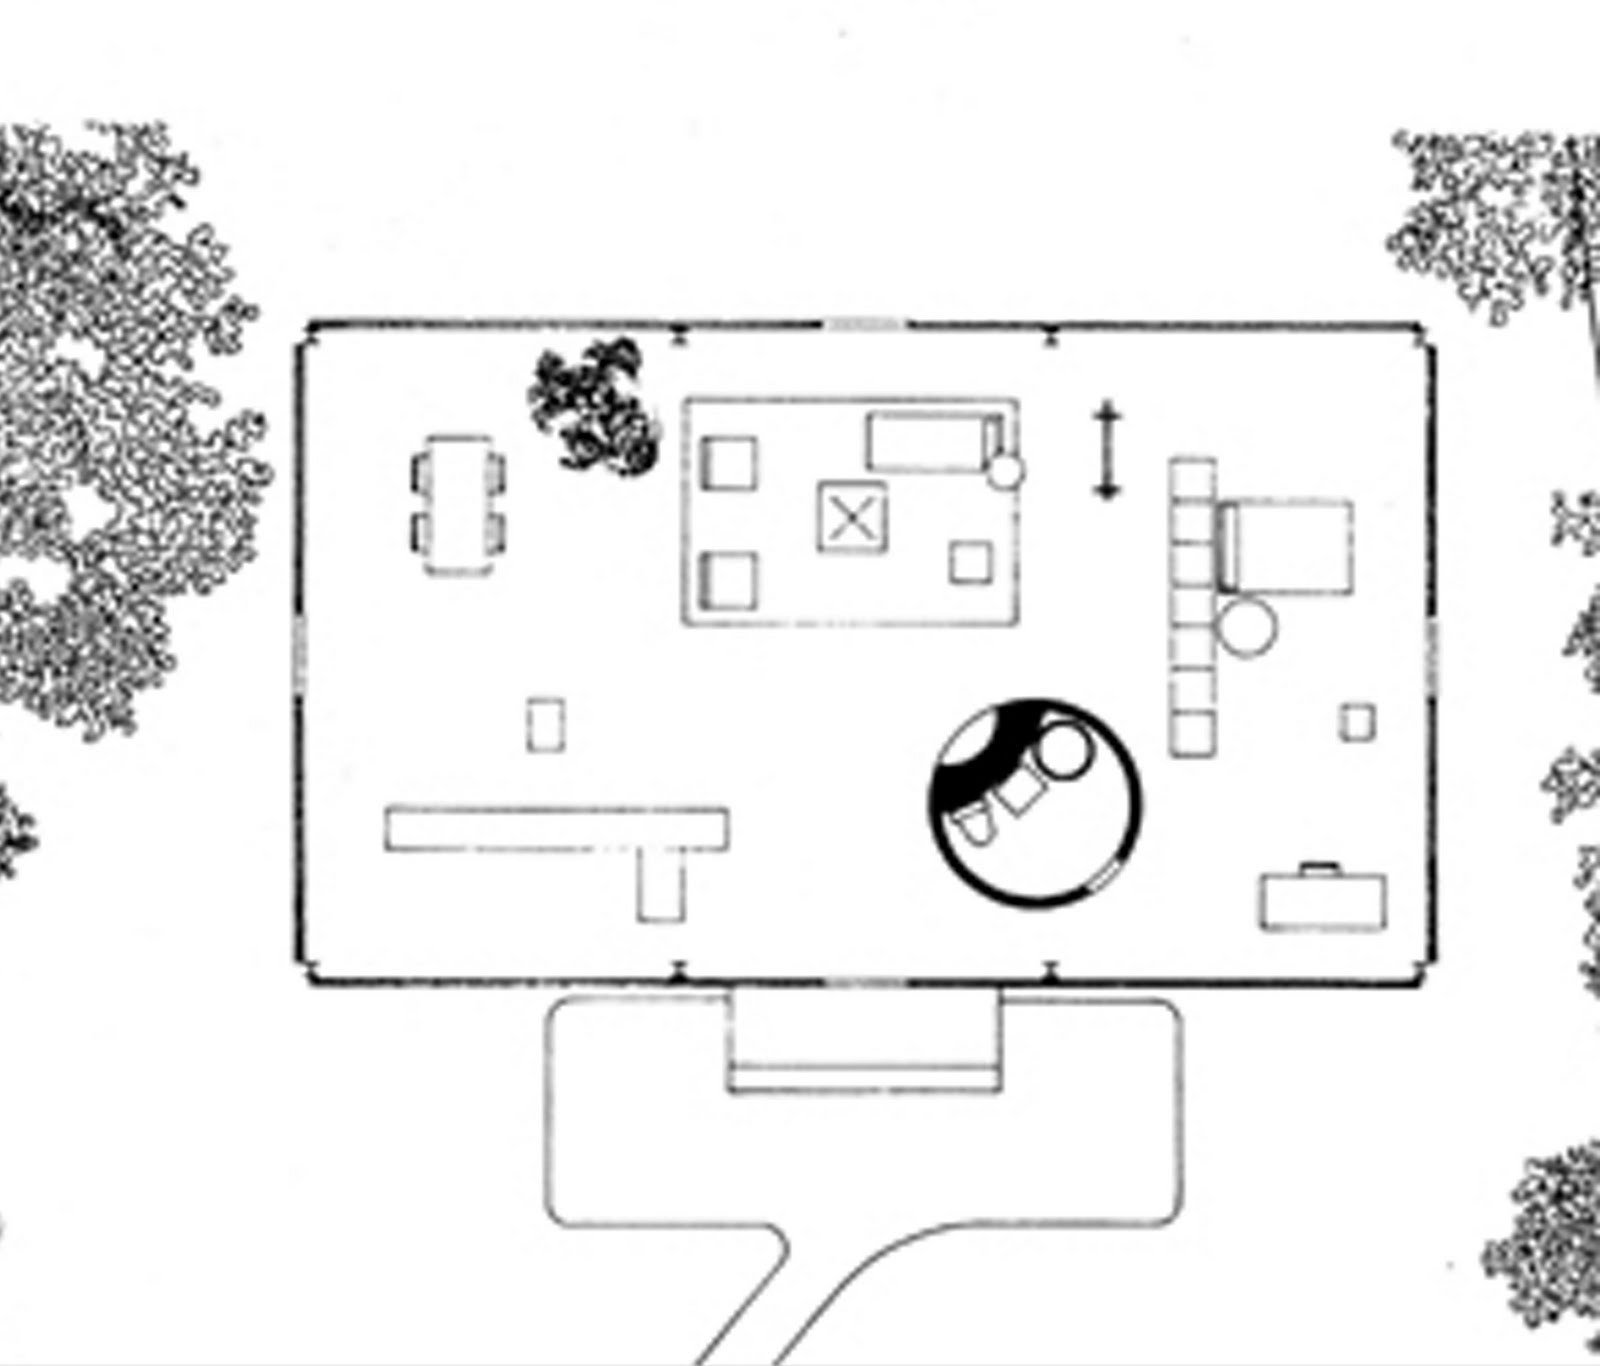 ShareMe - free Philip Johnson Glass House Floor Plan download